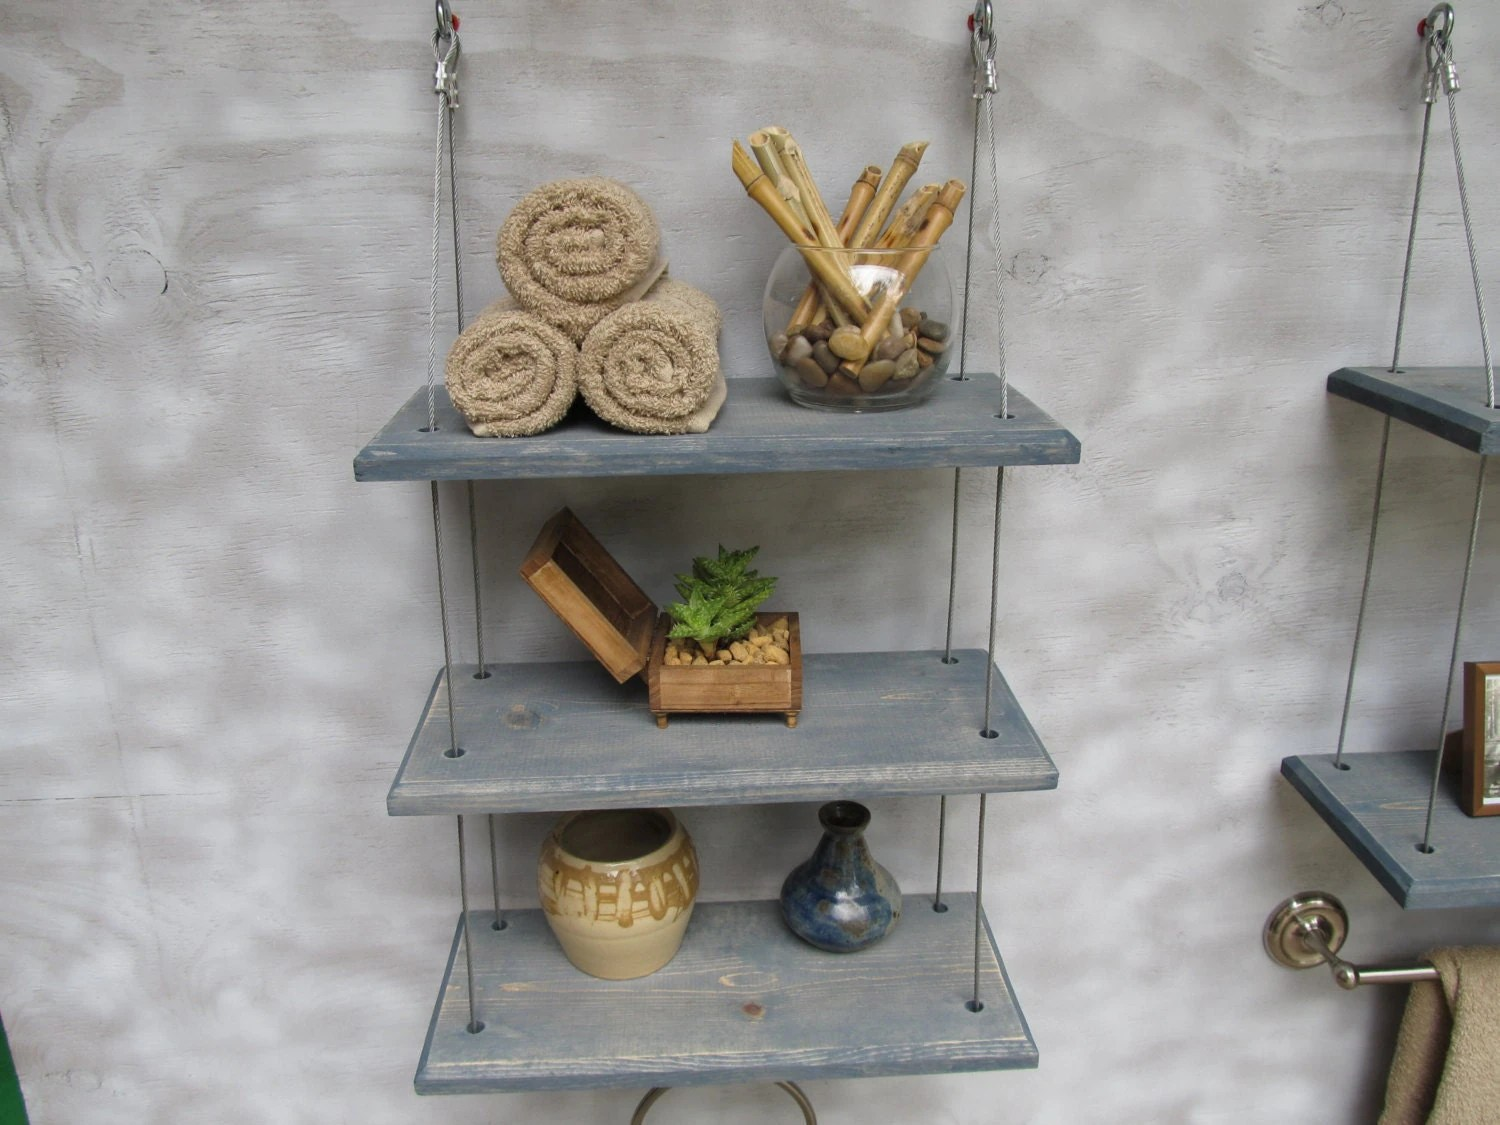 Fullsize Of Bathroom Decorative Shelves